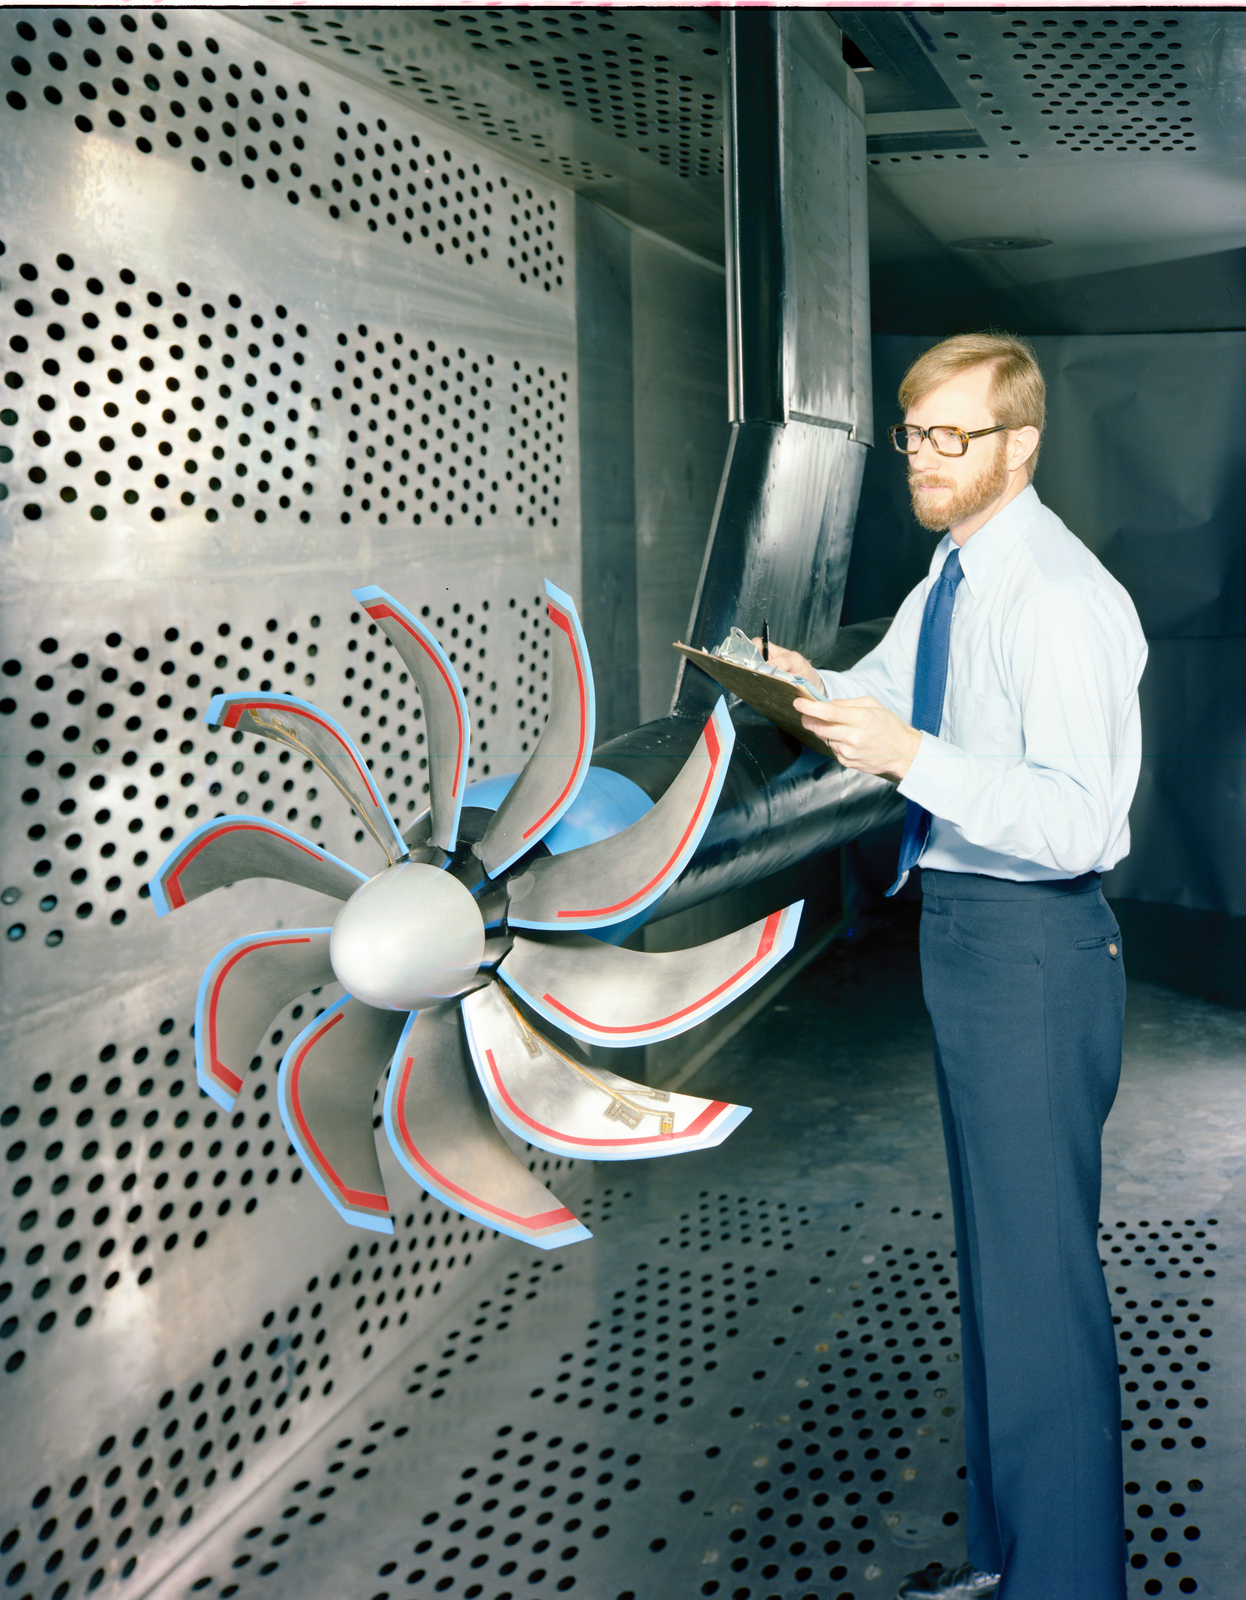 PTR IN THE 8X6 FOOT WIND TUNNEL WITH THE SR-5 BLADES INSTALLED